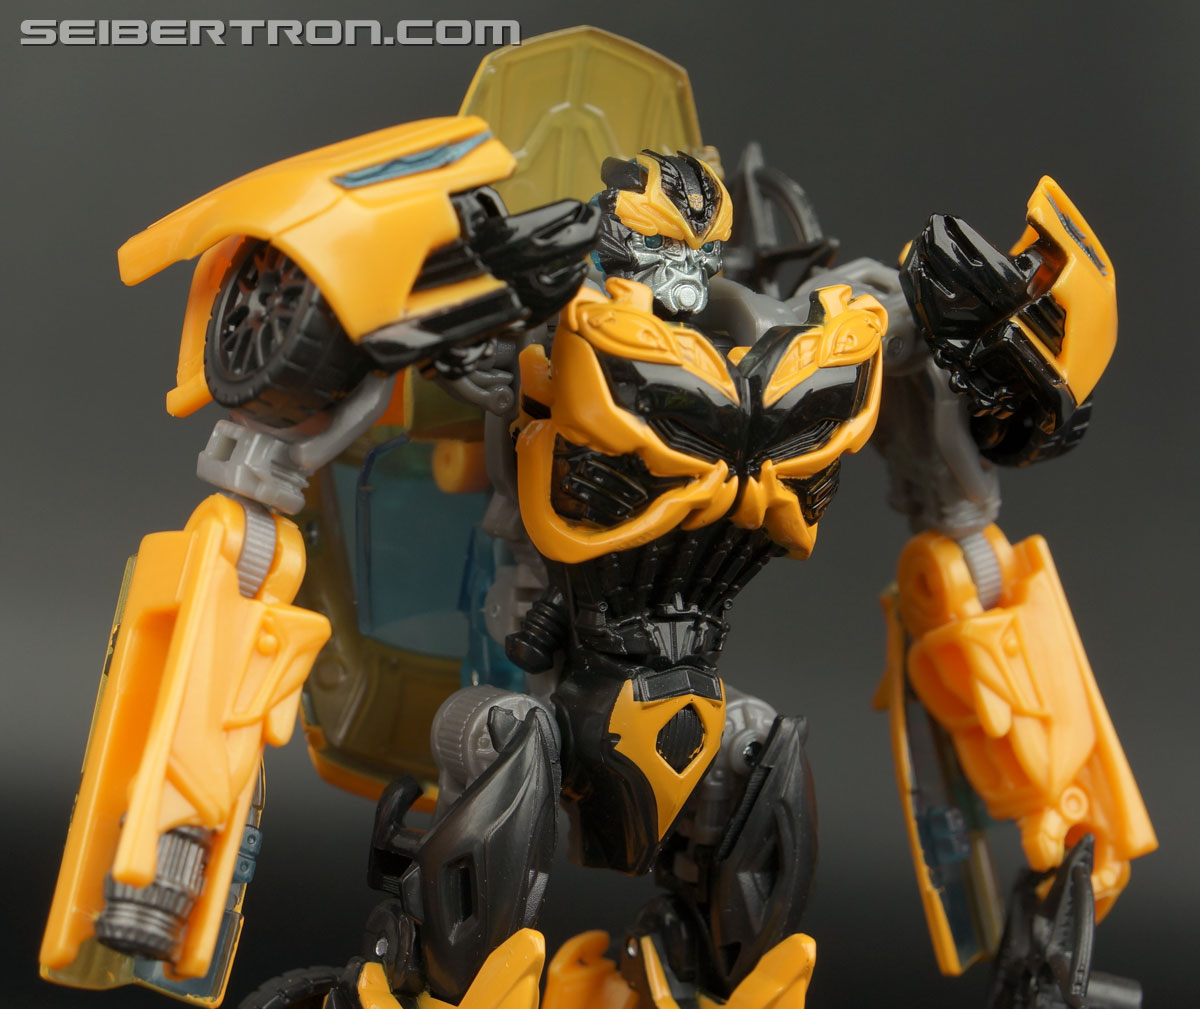 Transformers Age of Extinction: Generations Bumblebee (Image #64 of 190)